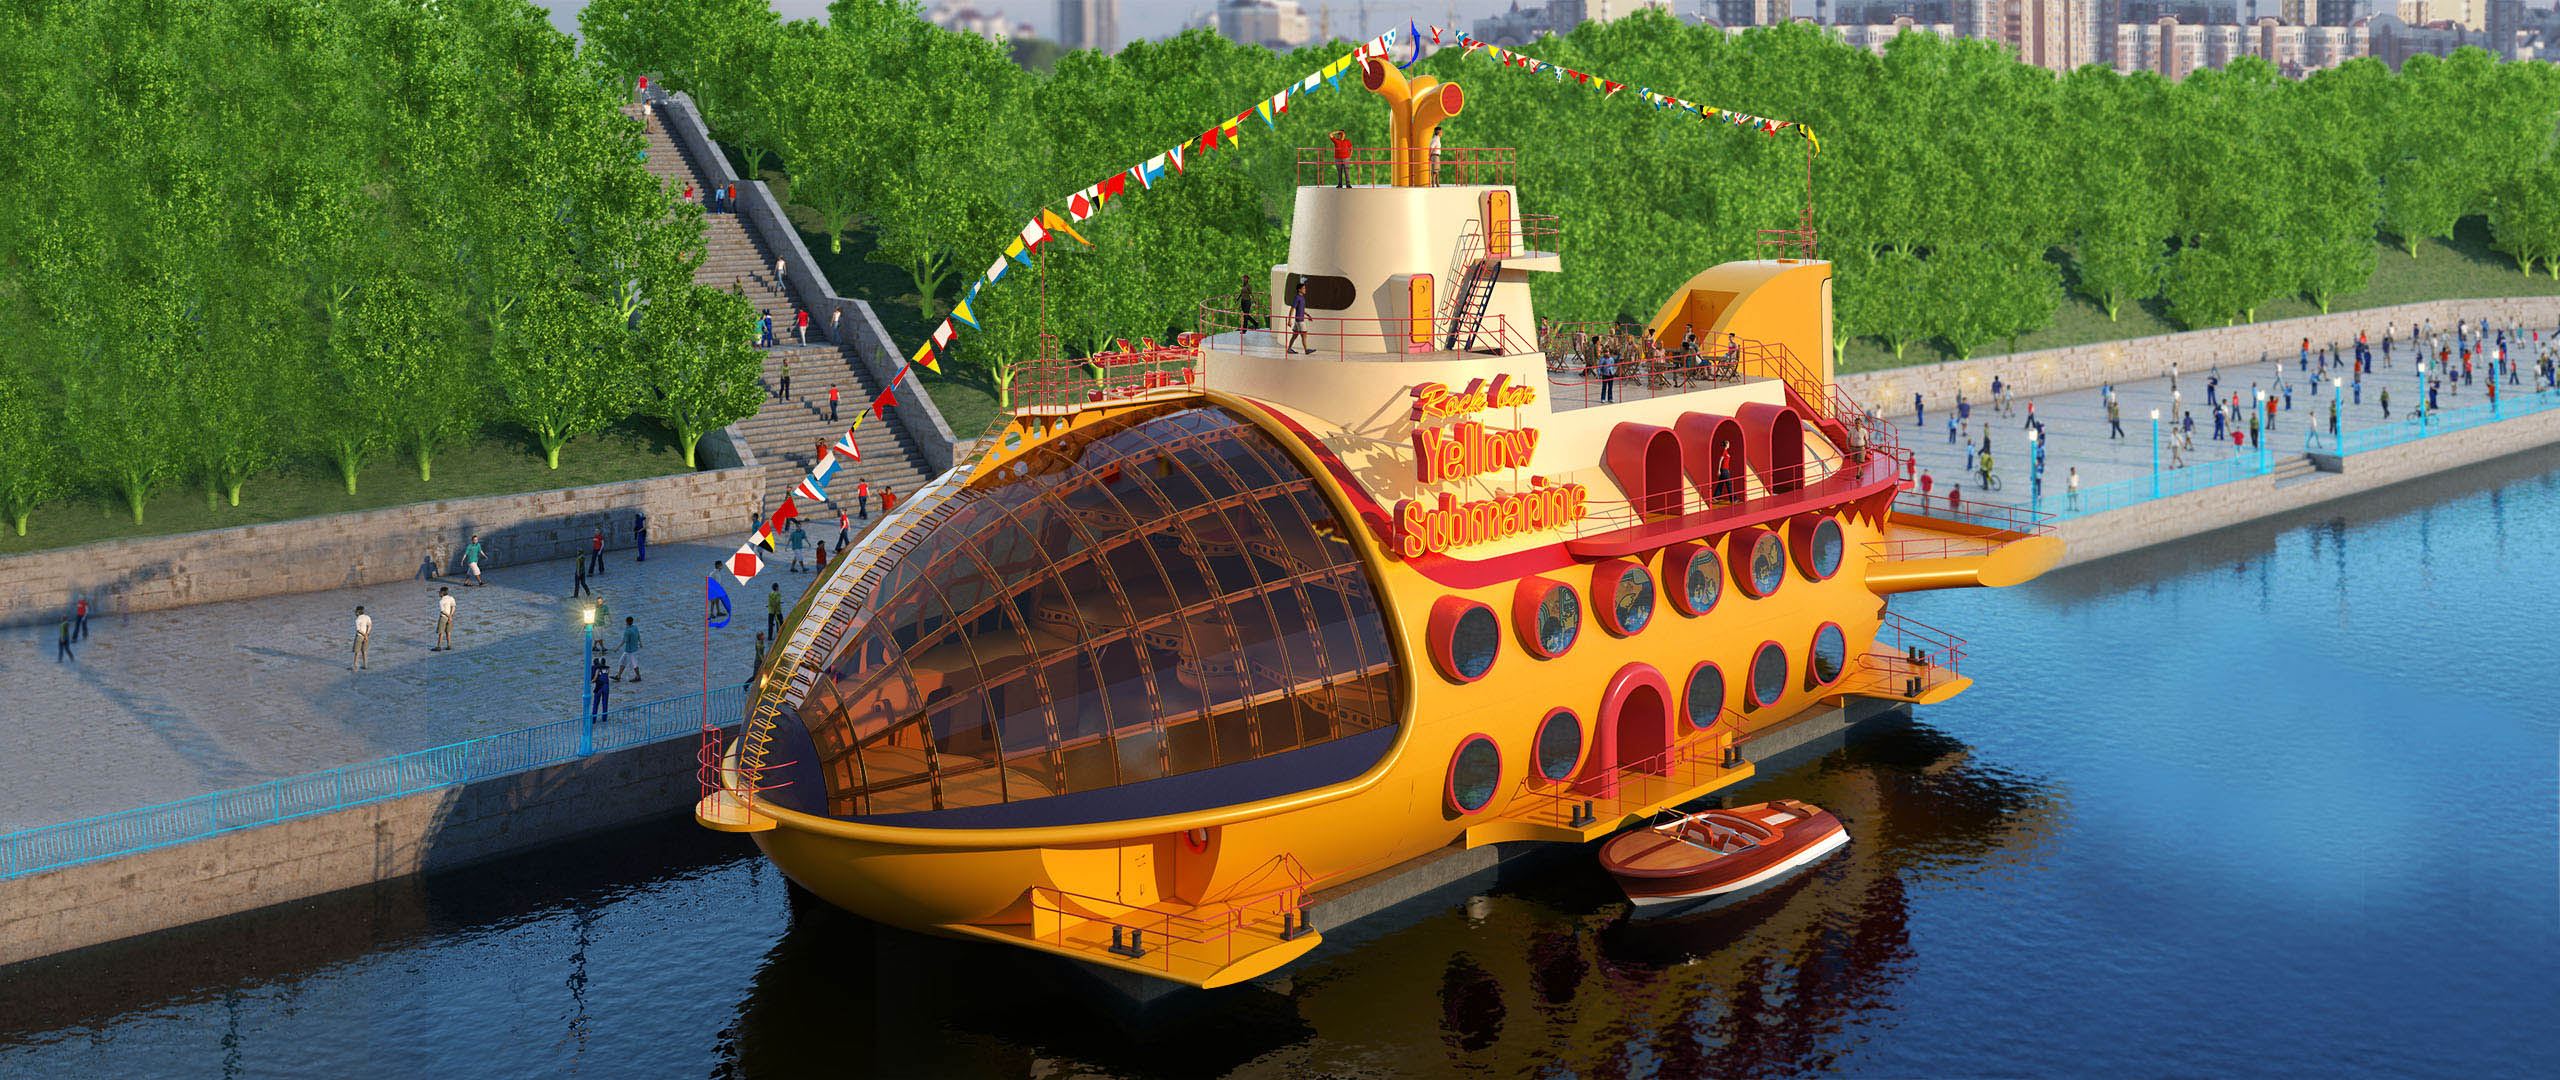 Project Yellow Submarine